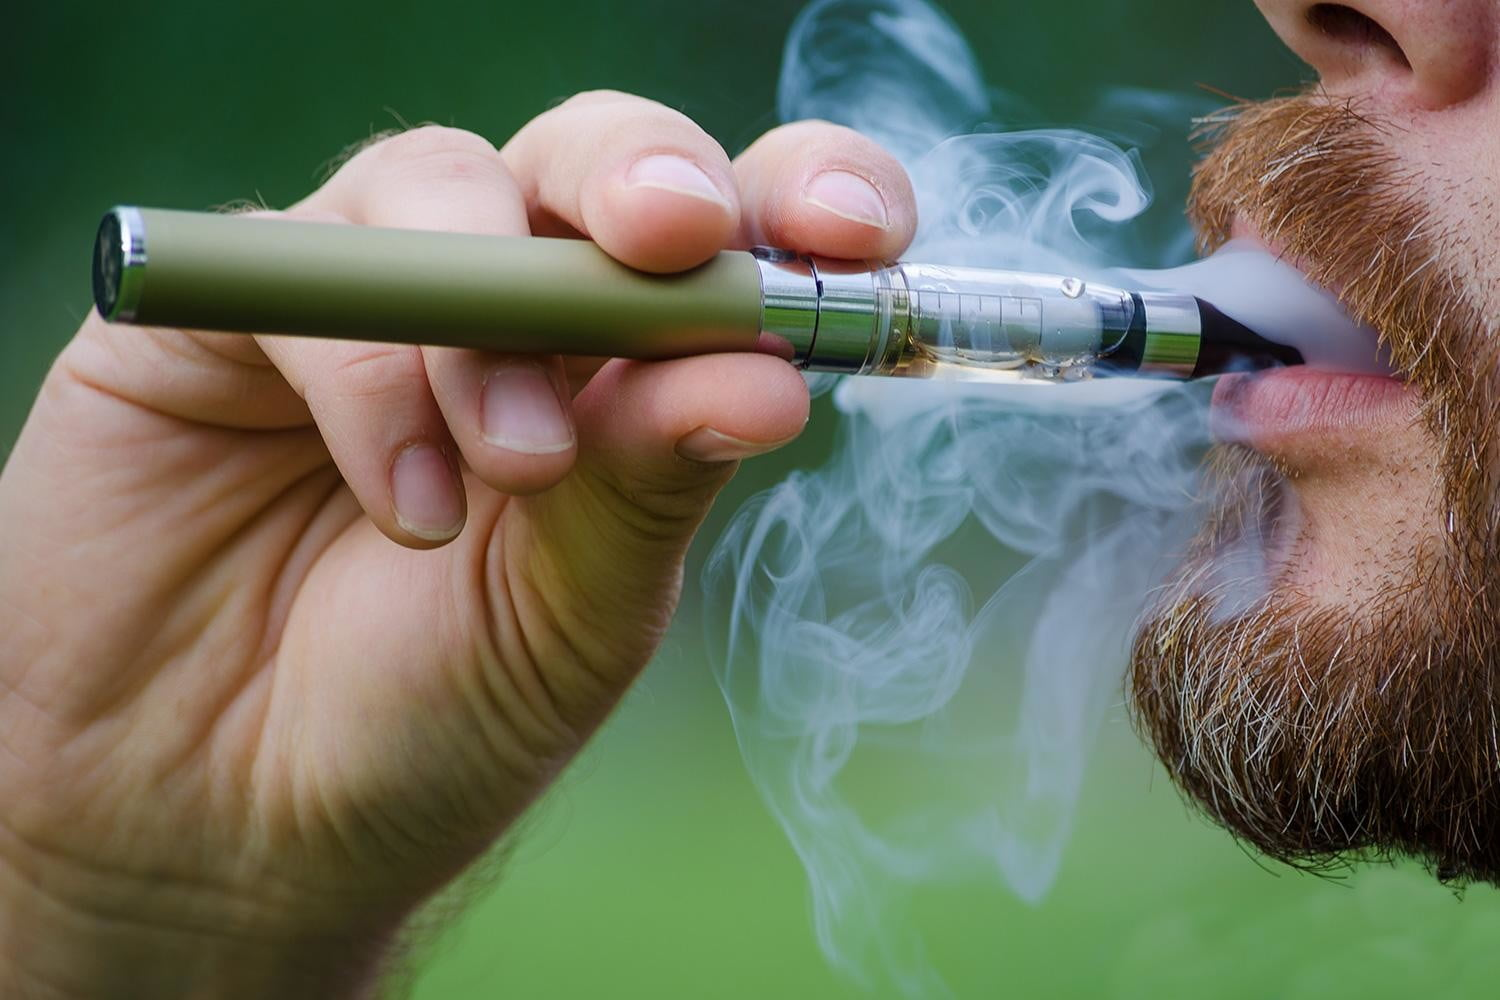 A Beginners Guide to Vaping | Digital Trends